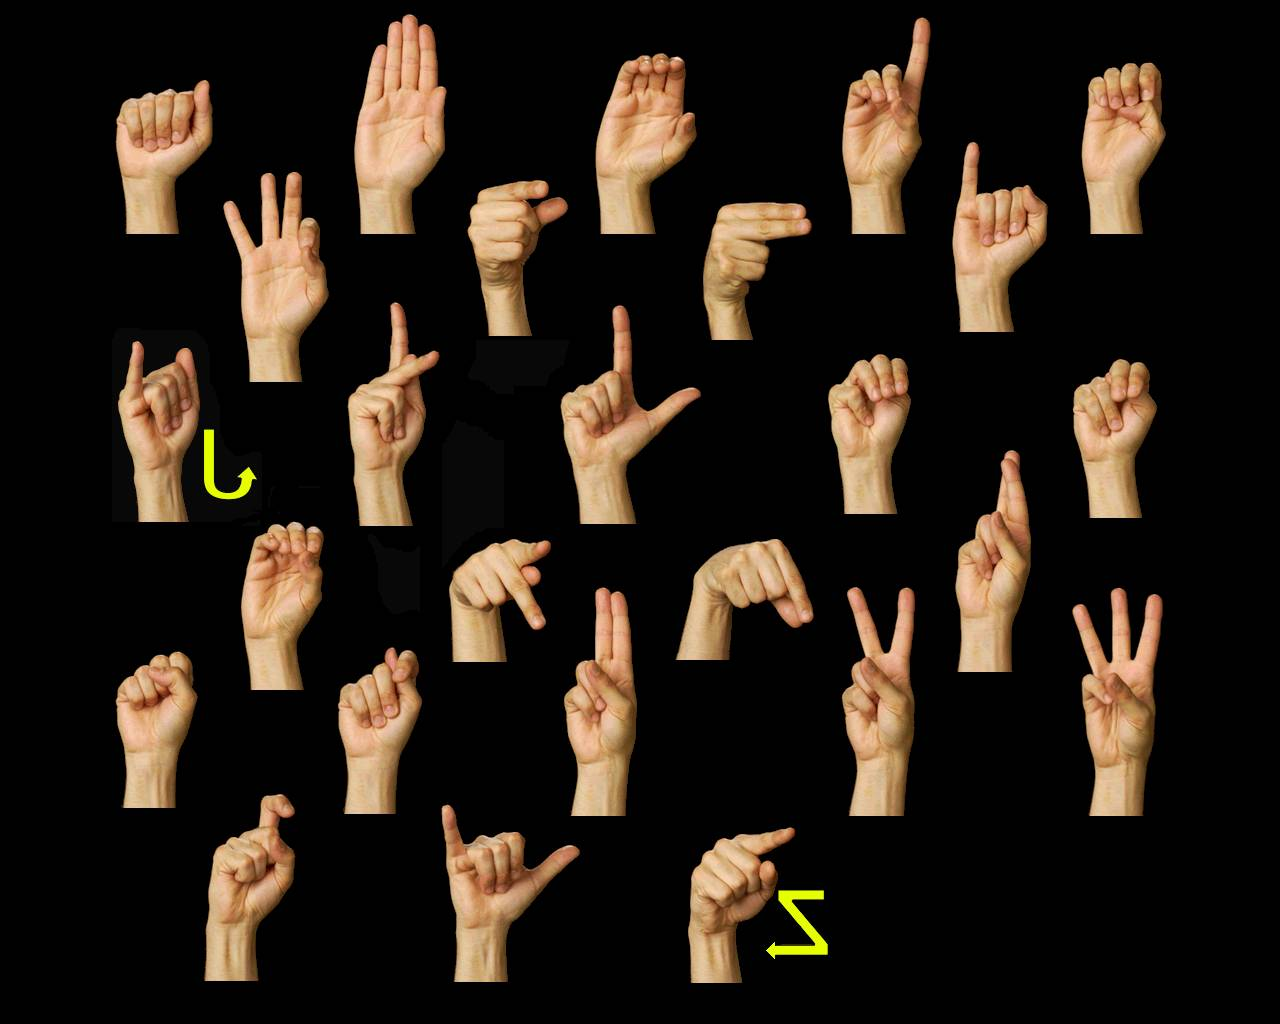 http://www.lifeprint.com/asl101/images-layout/signlanguage1280x1024.jpg